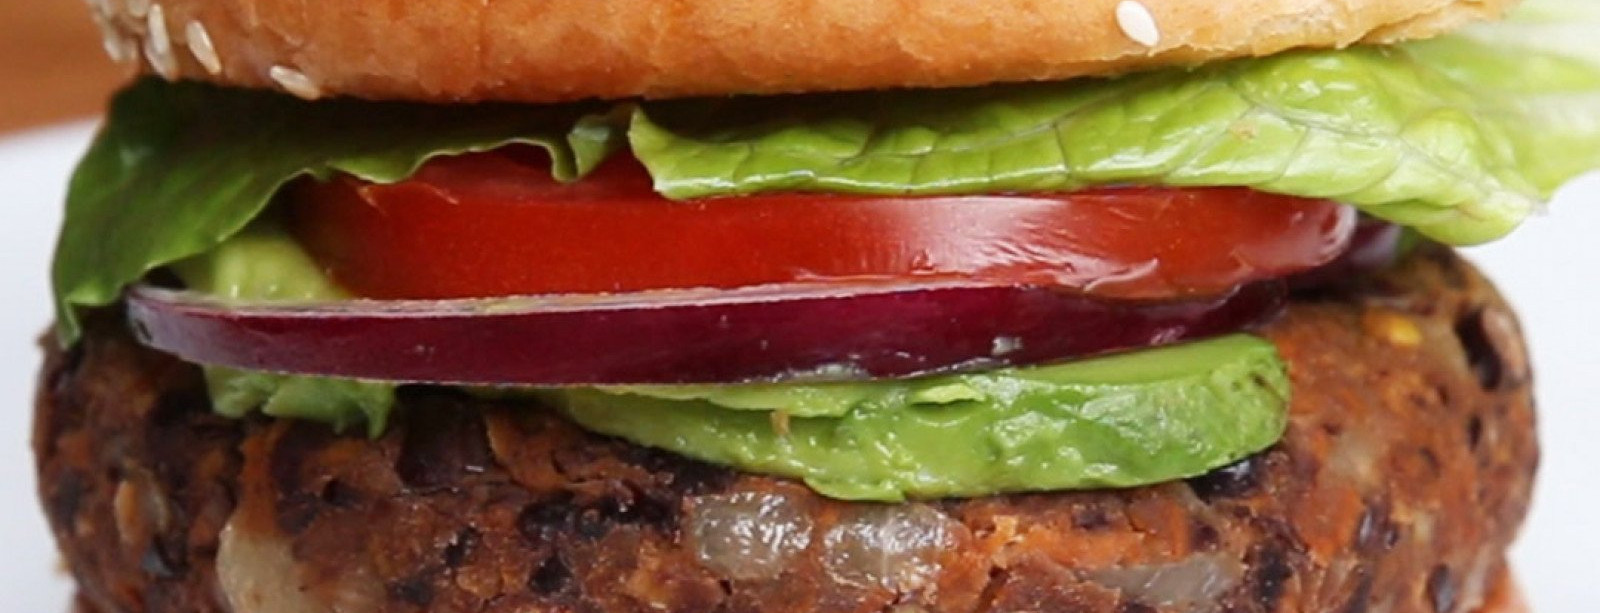 Out of this world vegetarian burgers